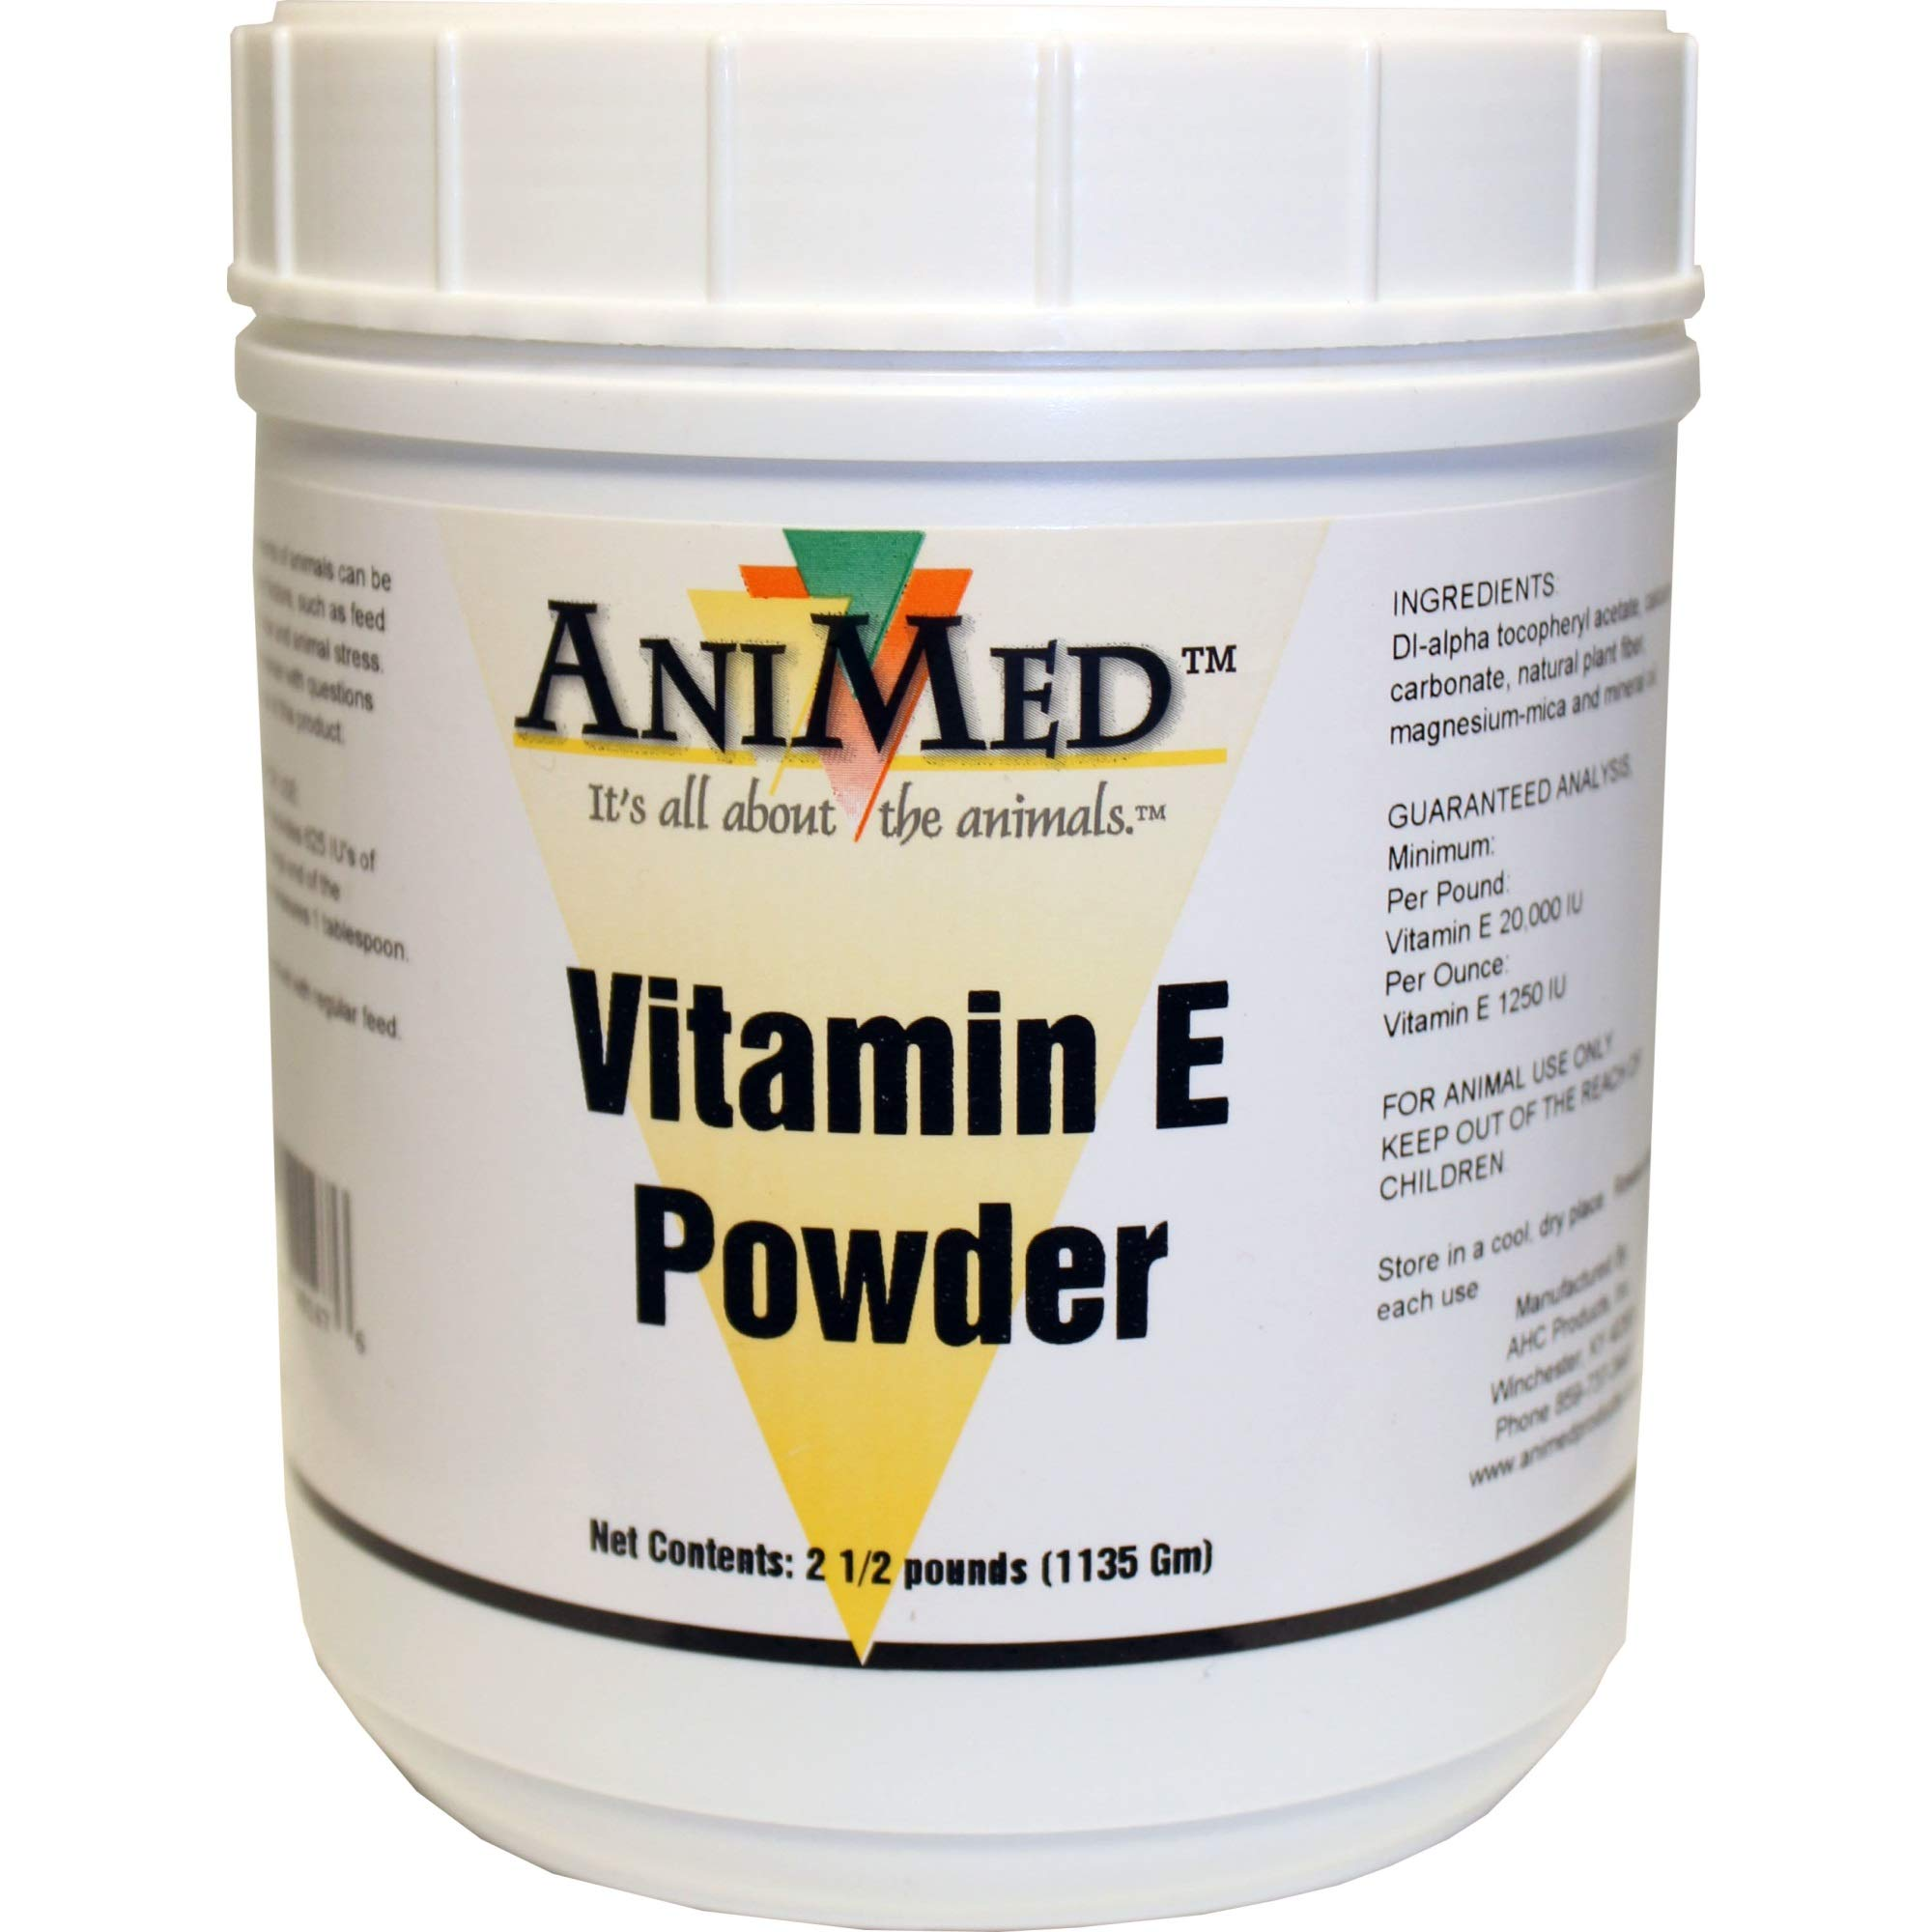 AniMed Vitamin E Powder Supplement for Horses, 2.5-Pound by AniMed